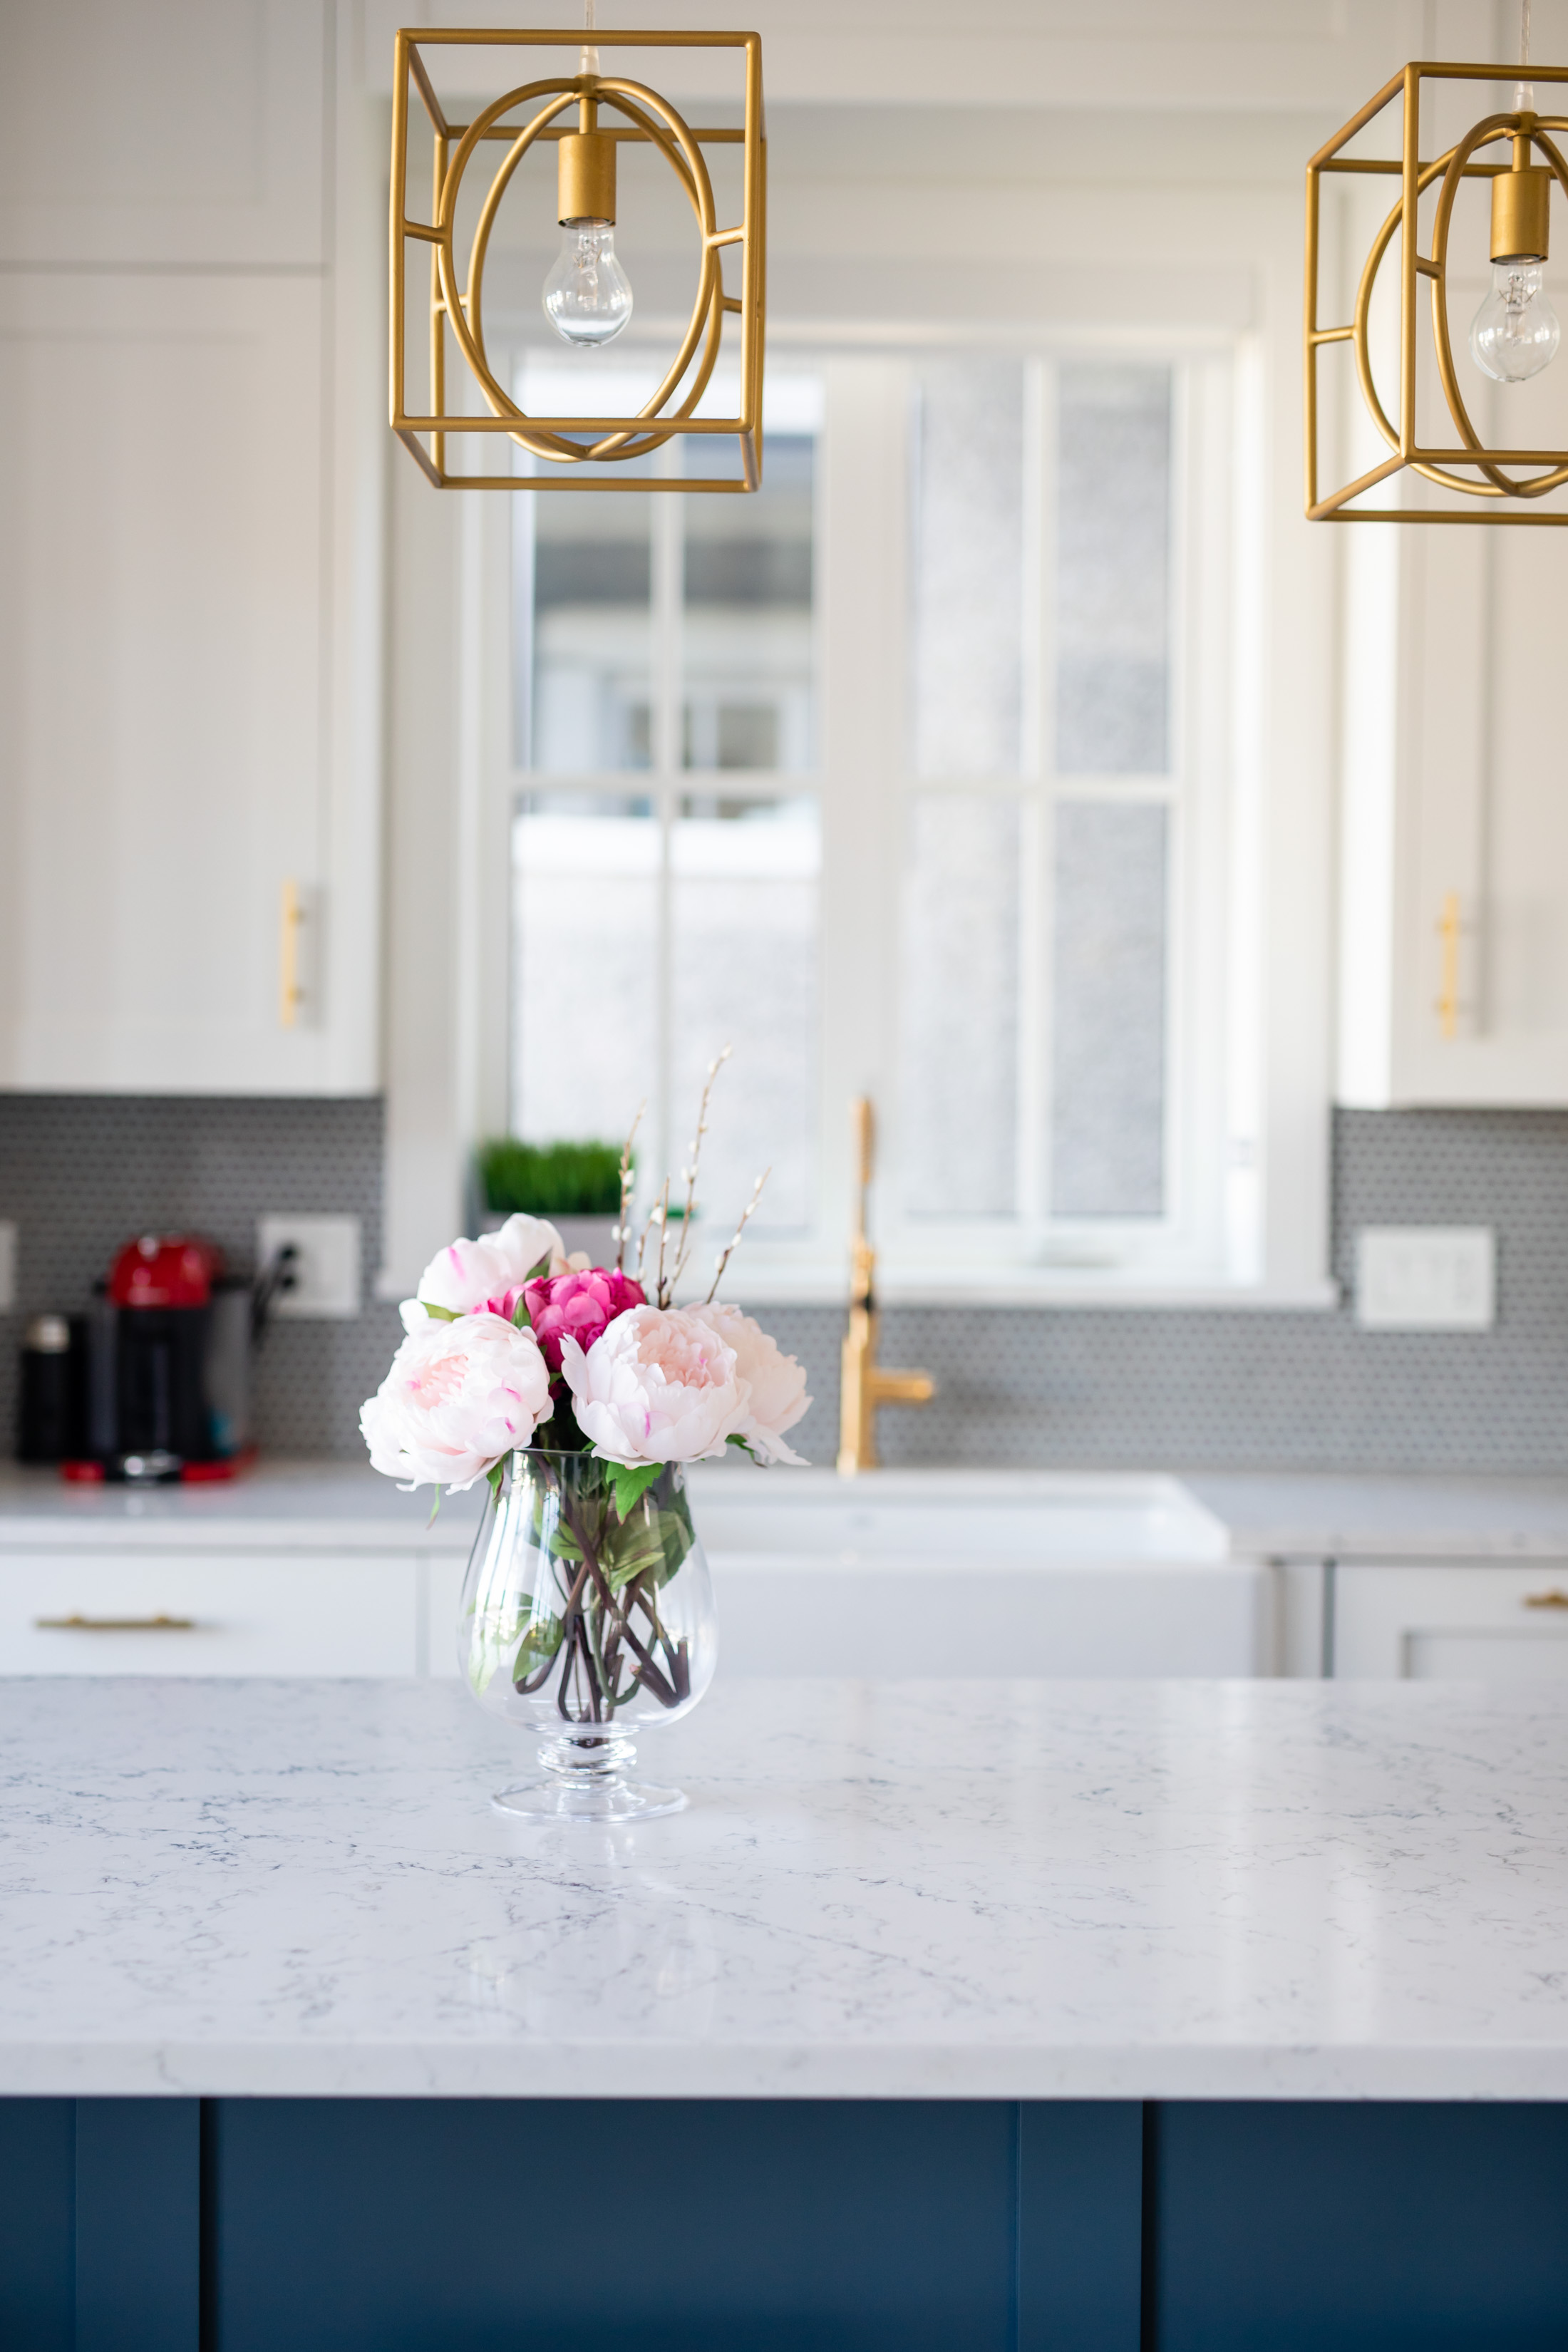 transitional kitchen with gold light pendants